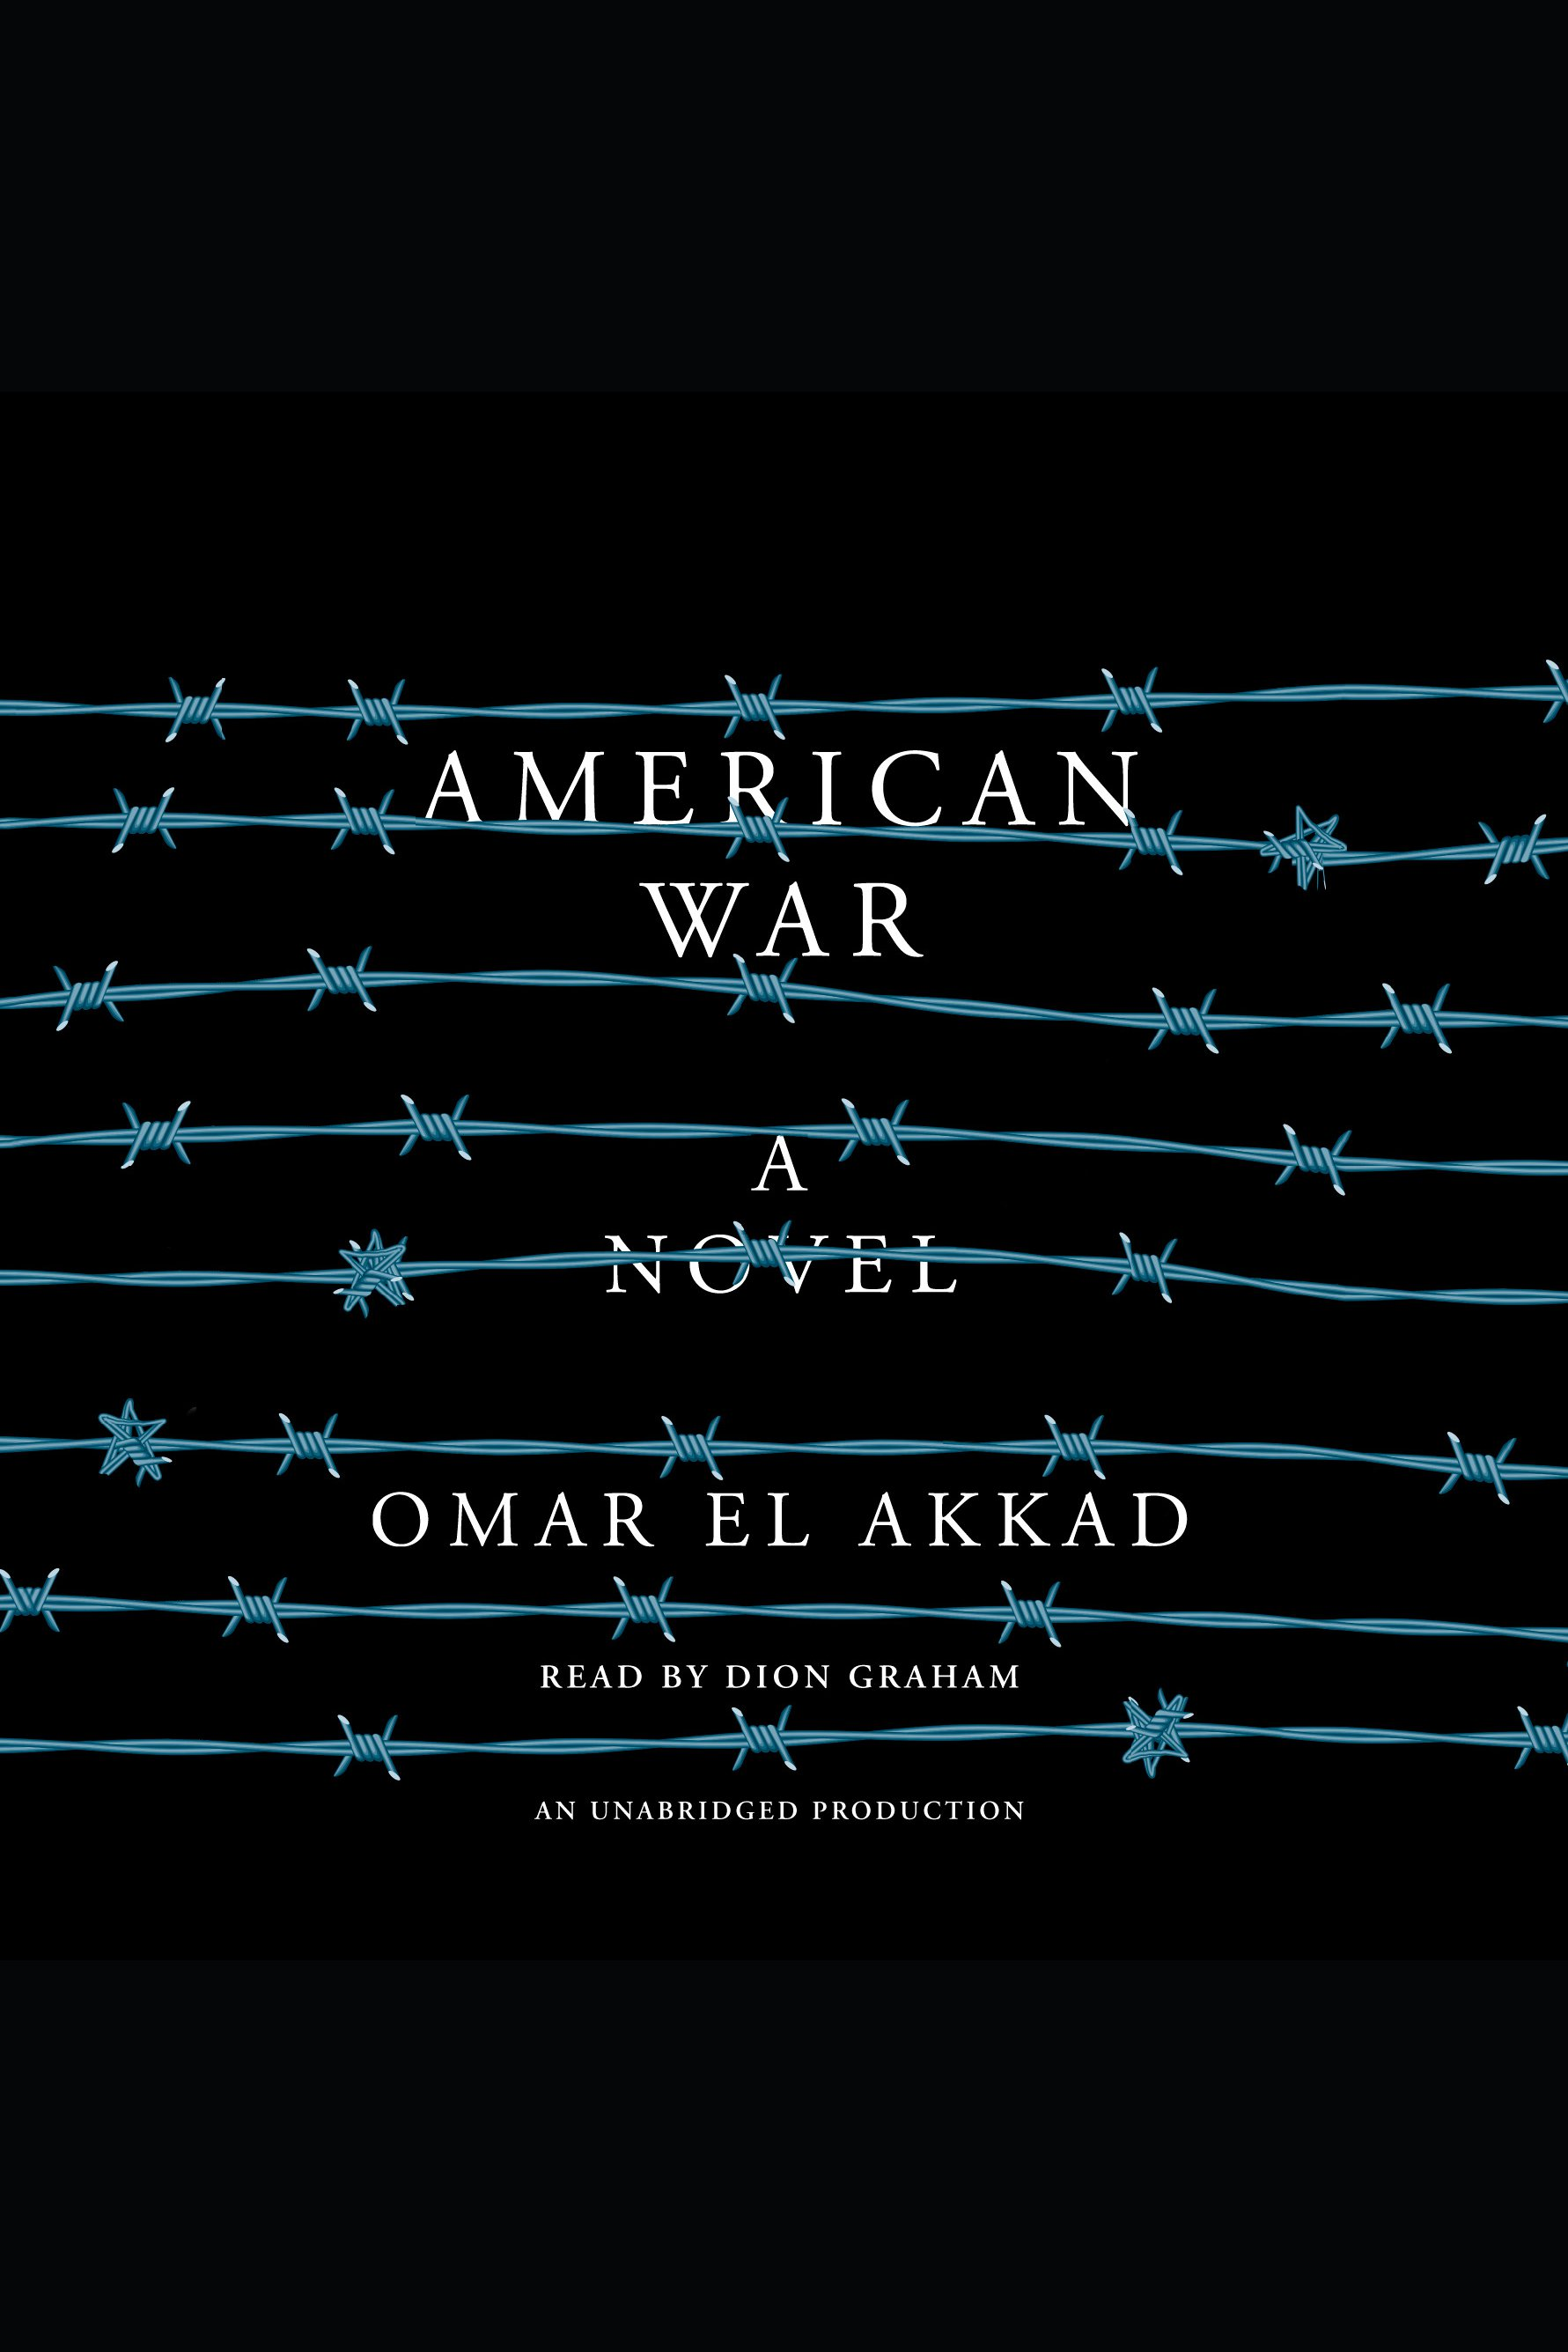 American war [AudioEbook] : a novel